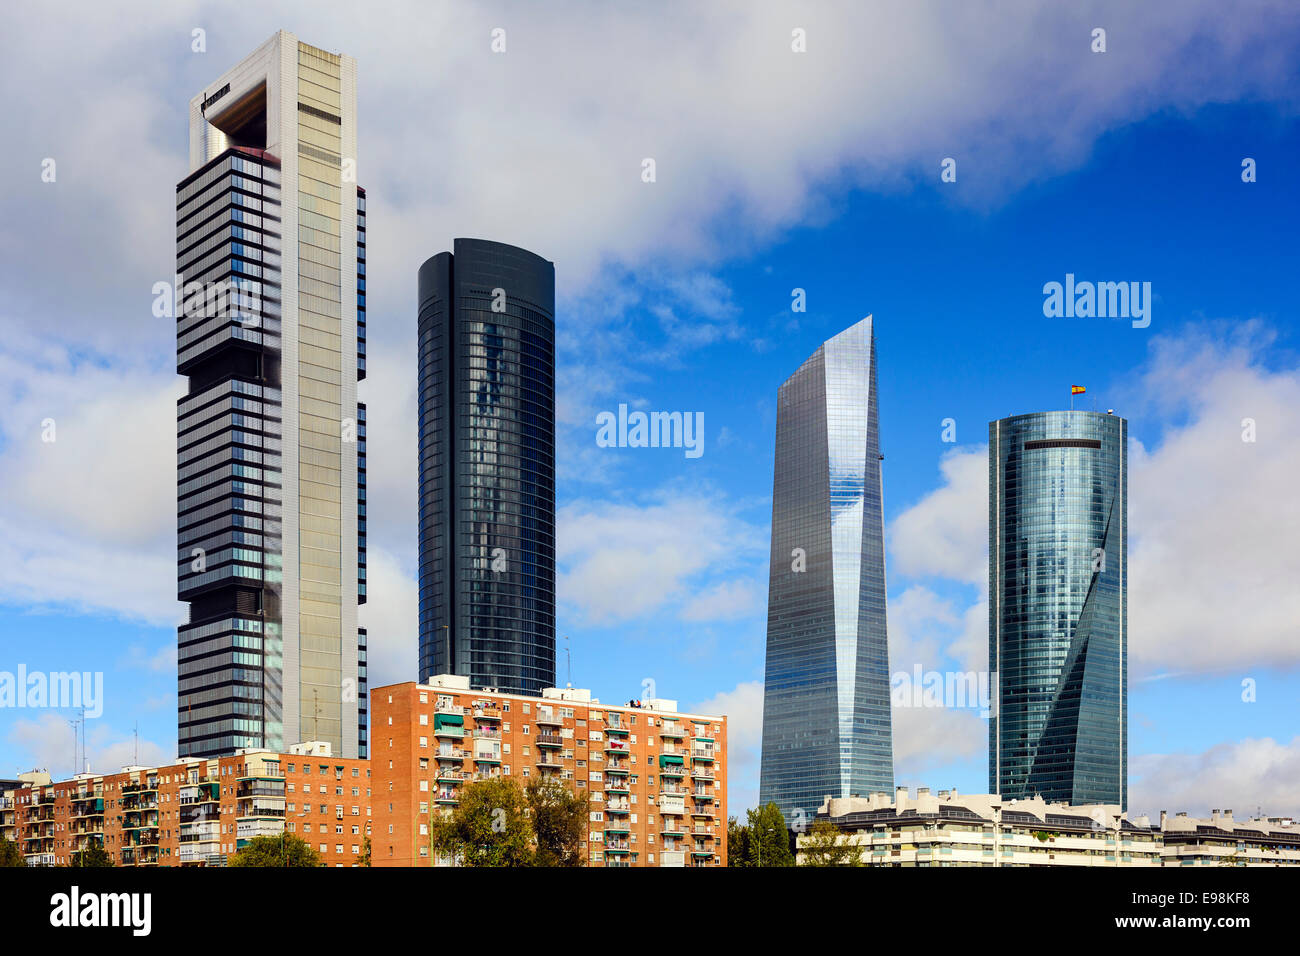 Madrid, Espagne Quartier Financier de la ville. Photo Stock